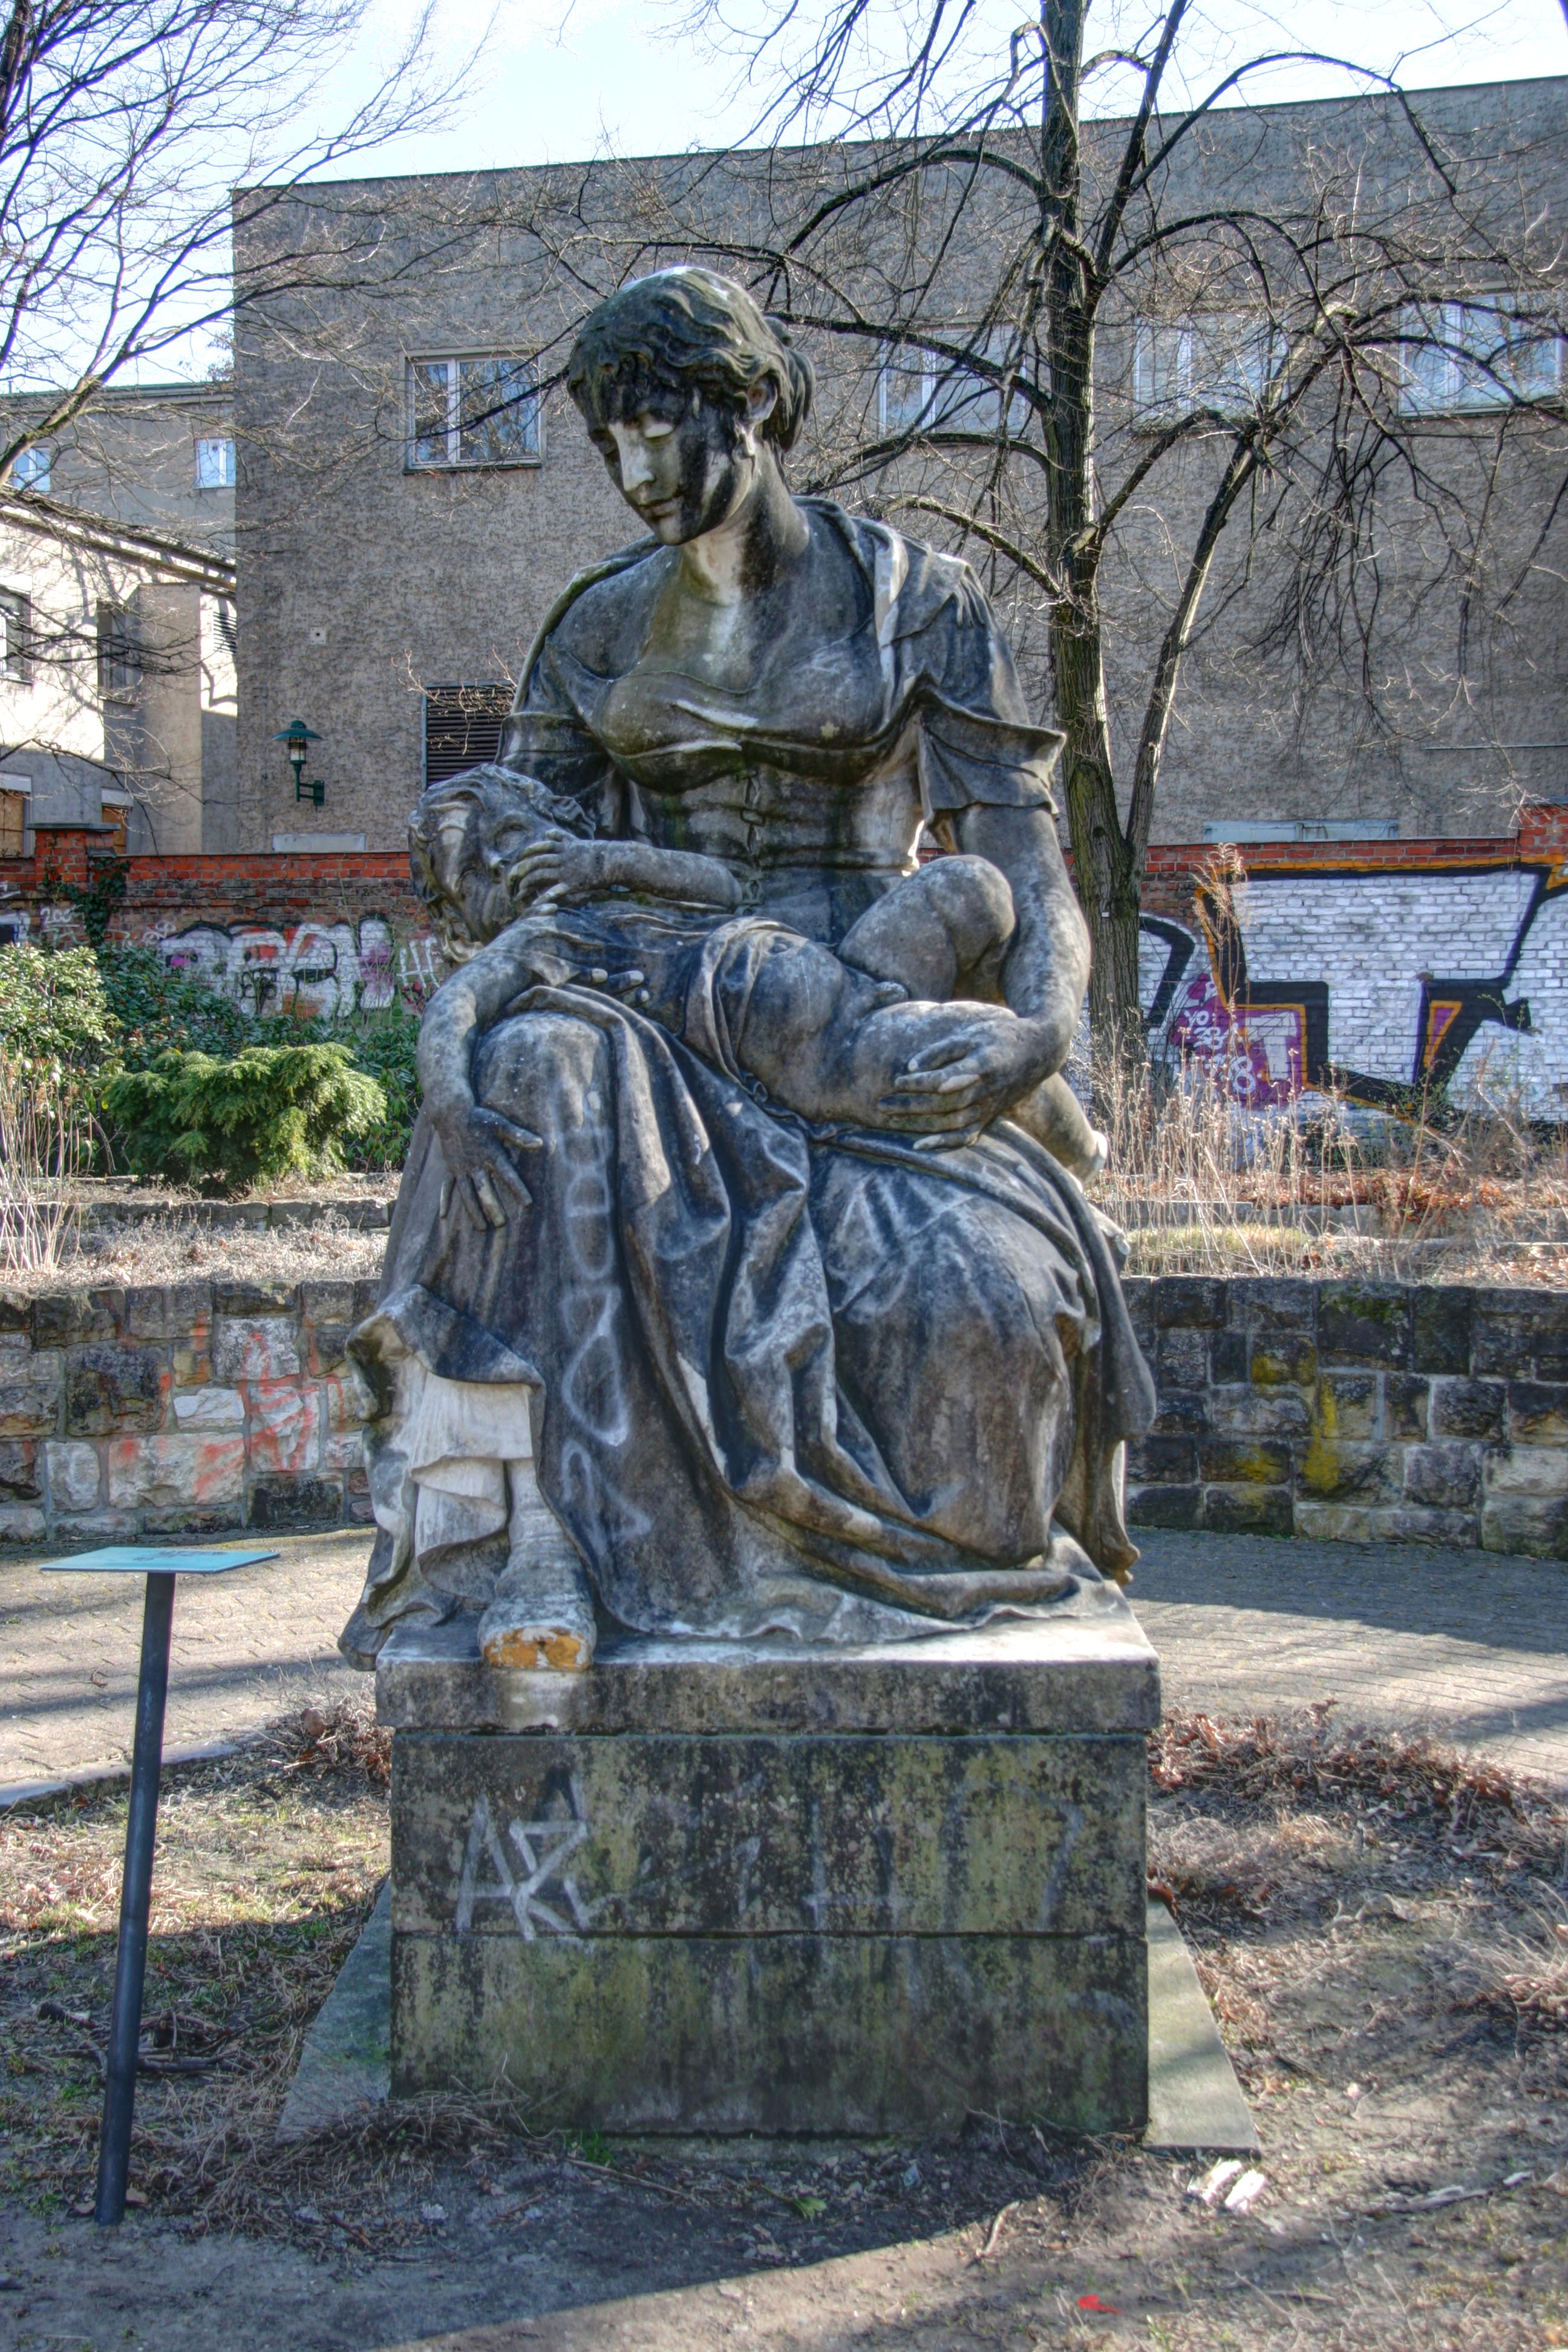 Mutter Mit Kind (Mother With Child) Sculpture in Volkspark Friedrichshain in Berlin